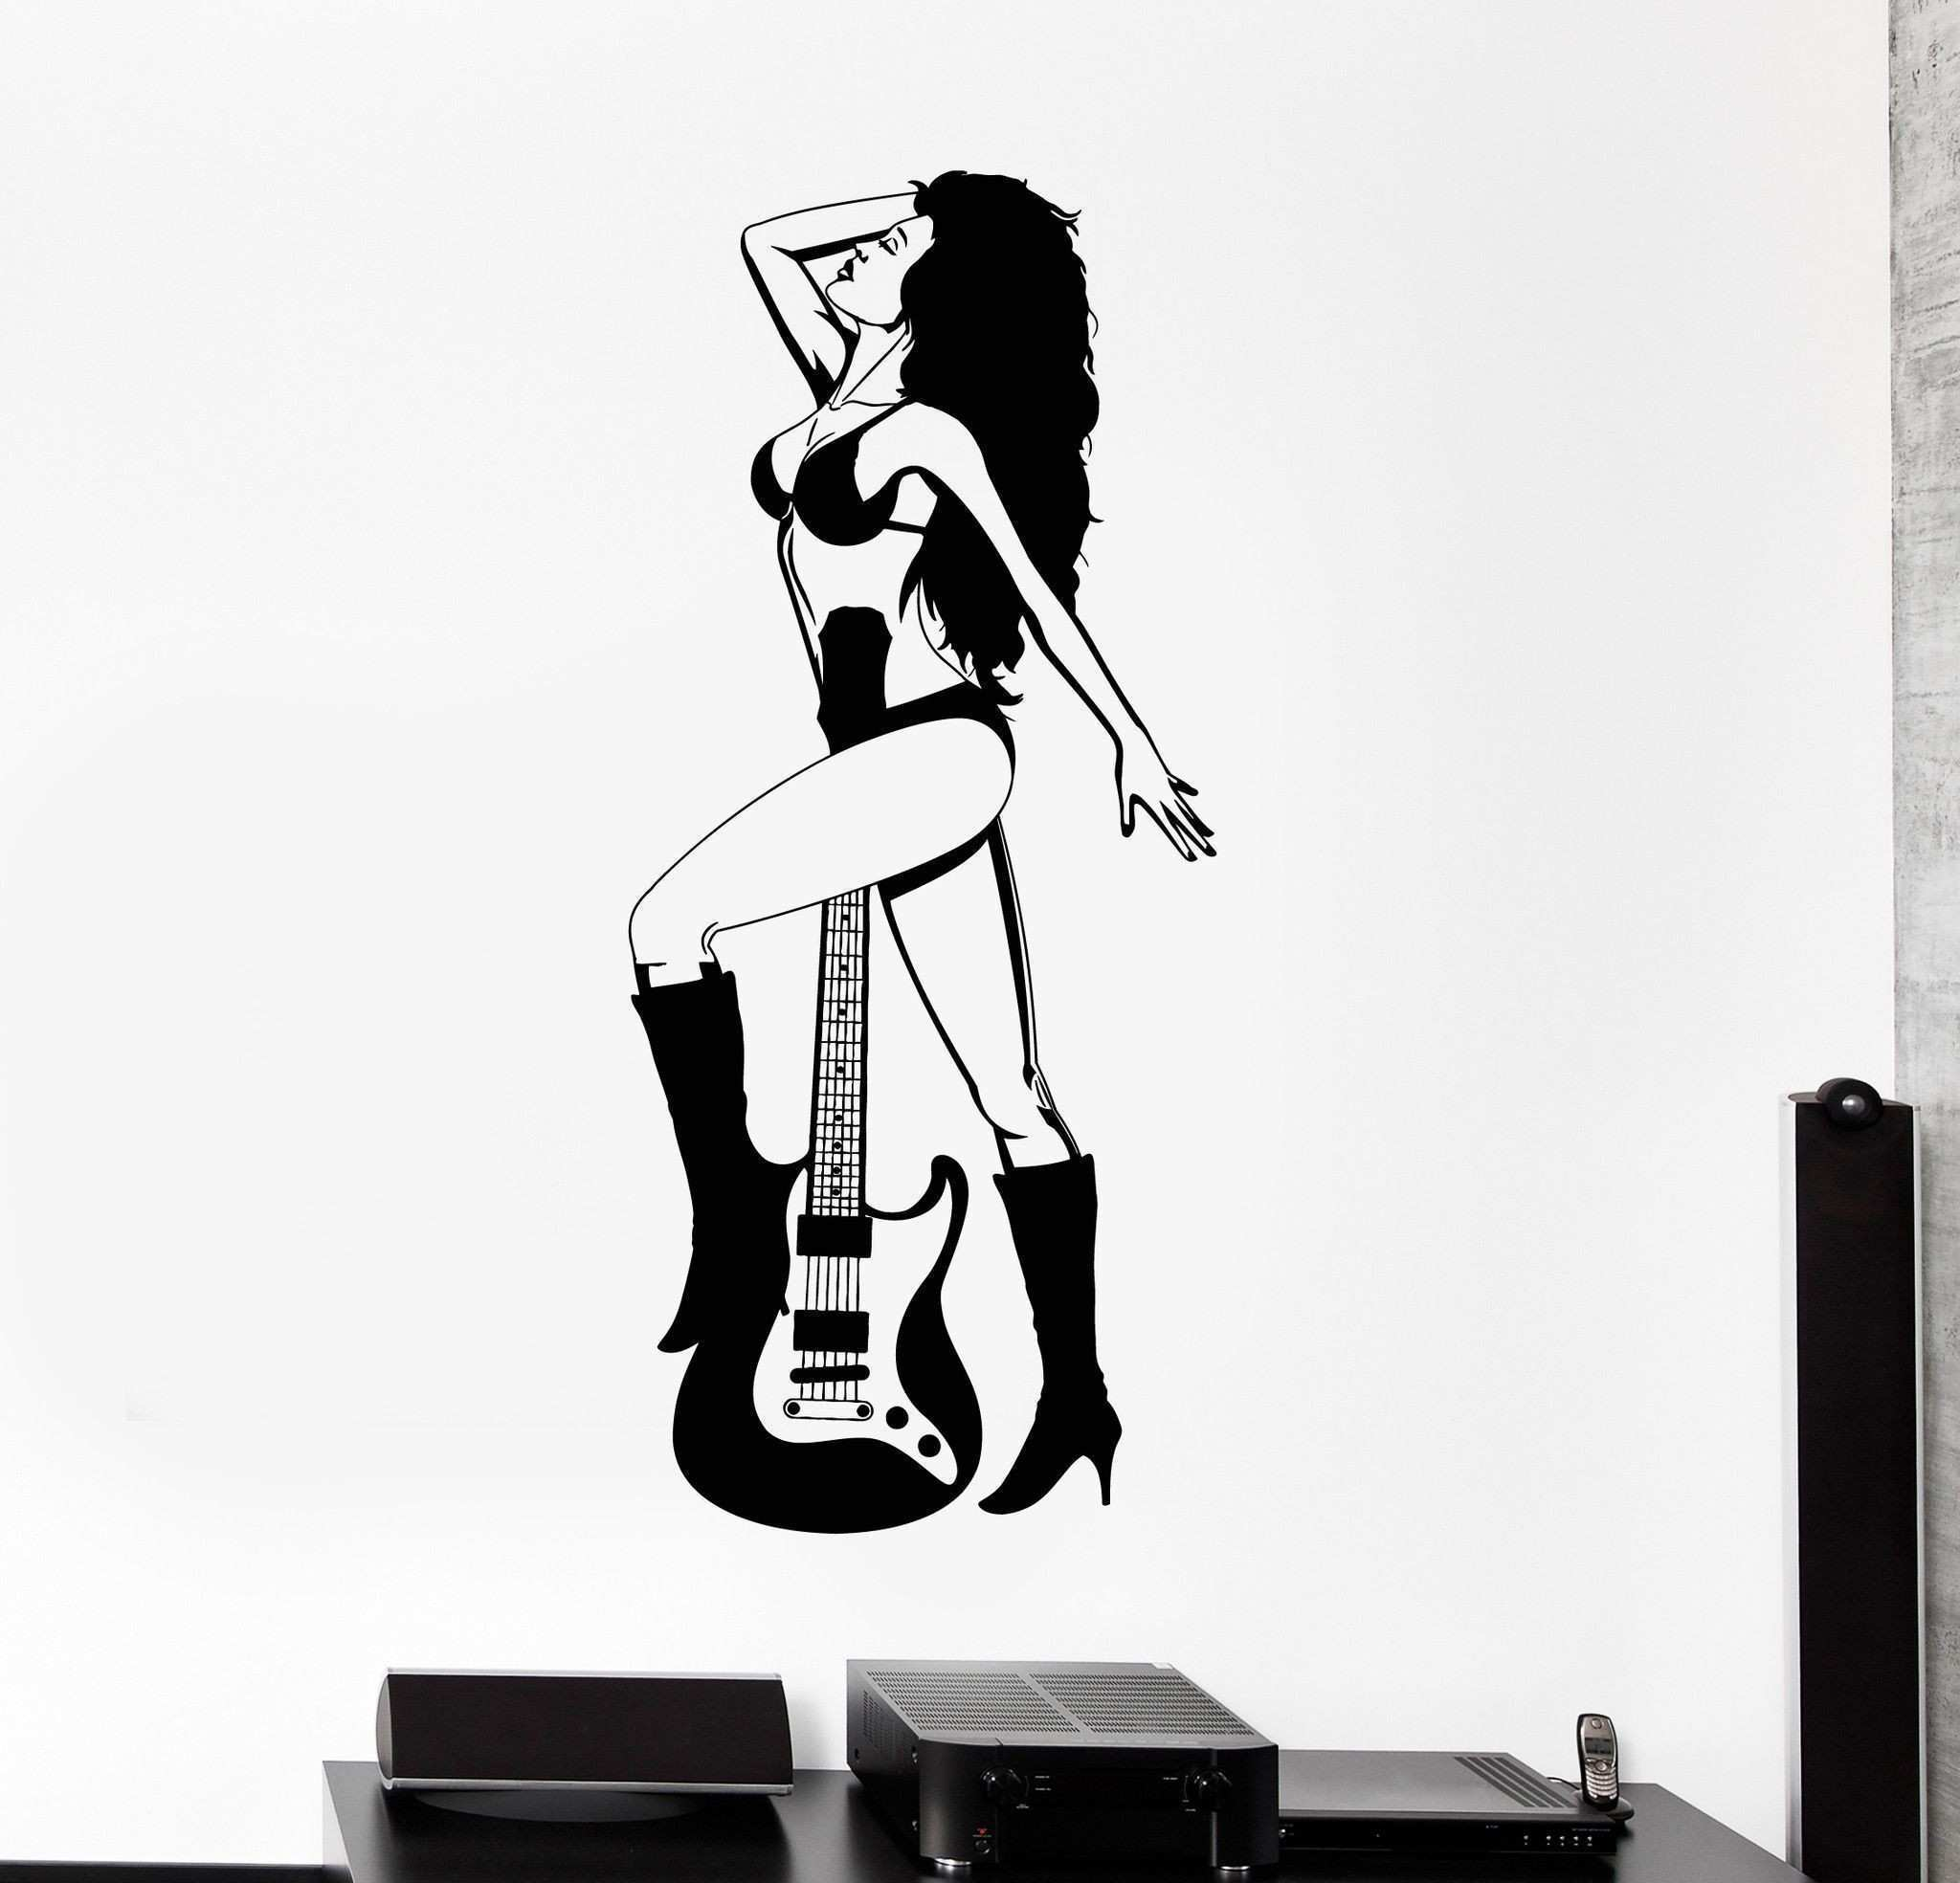 Vinyl Wall Clings Elegant Vinyl Wall Decal Y Rock Woman Girl Guitar Music Stickers Mural